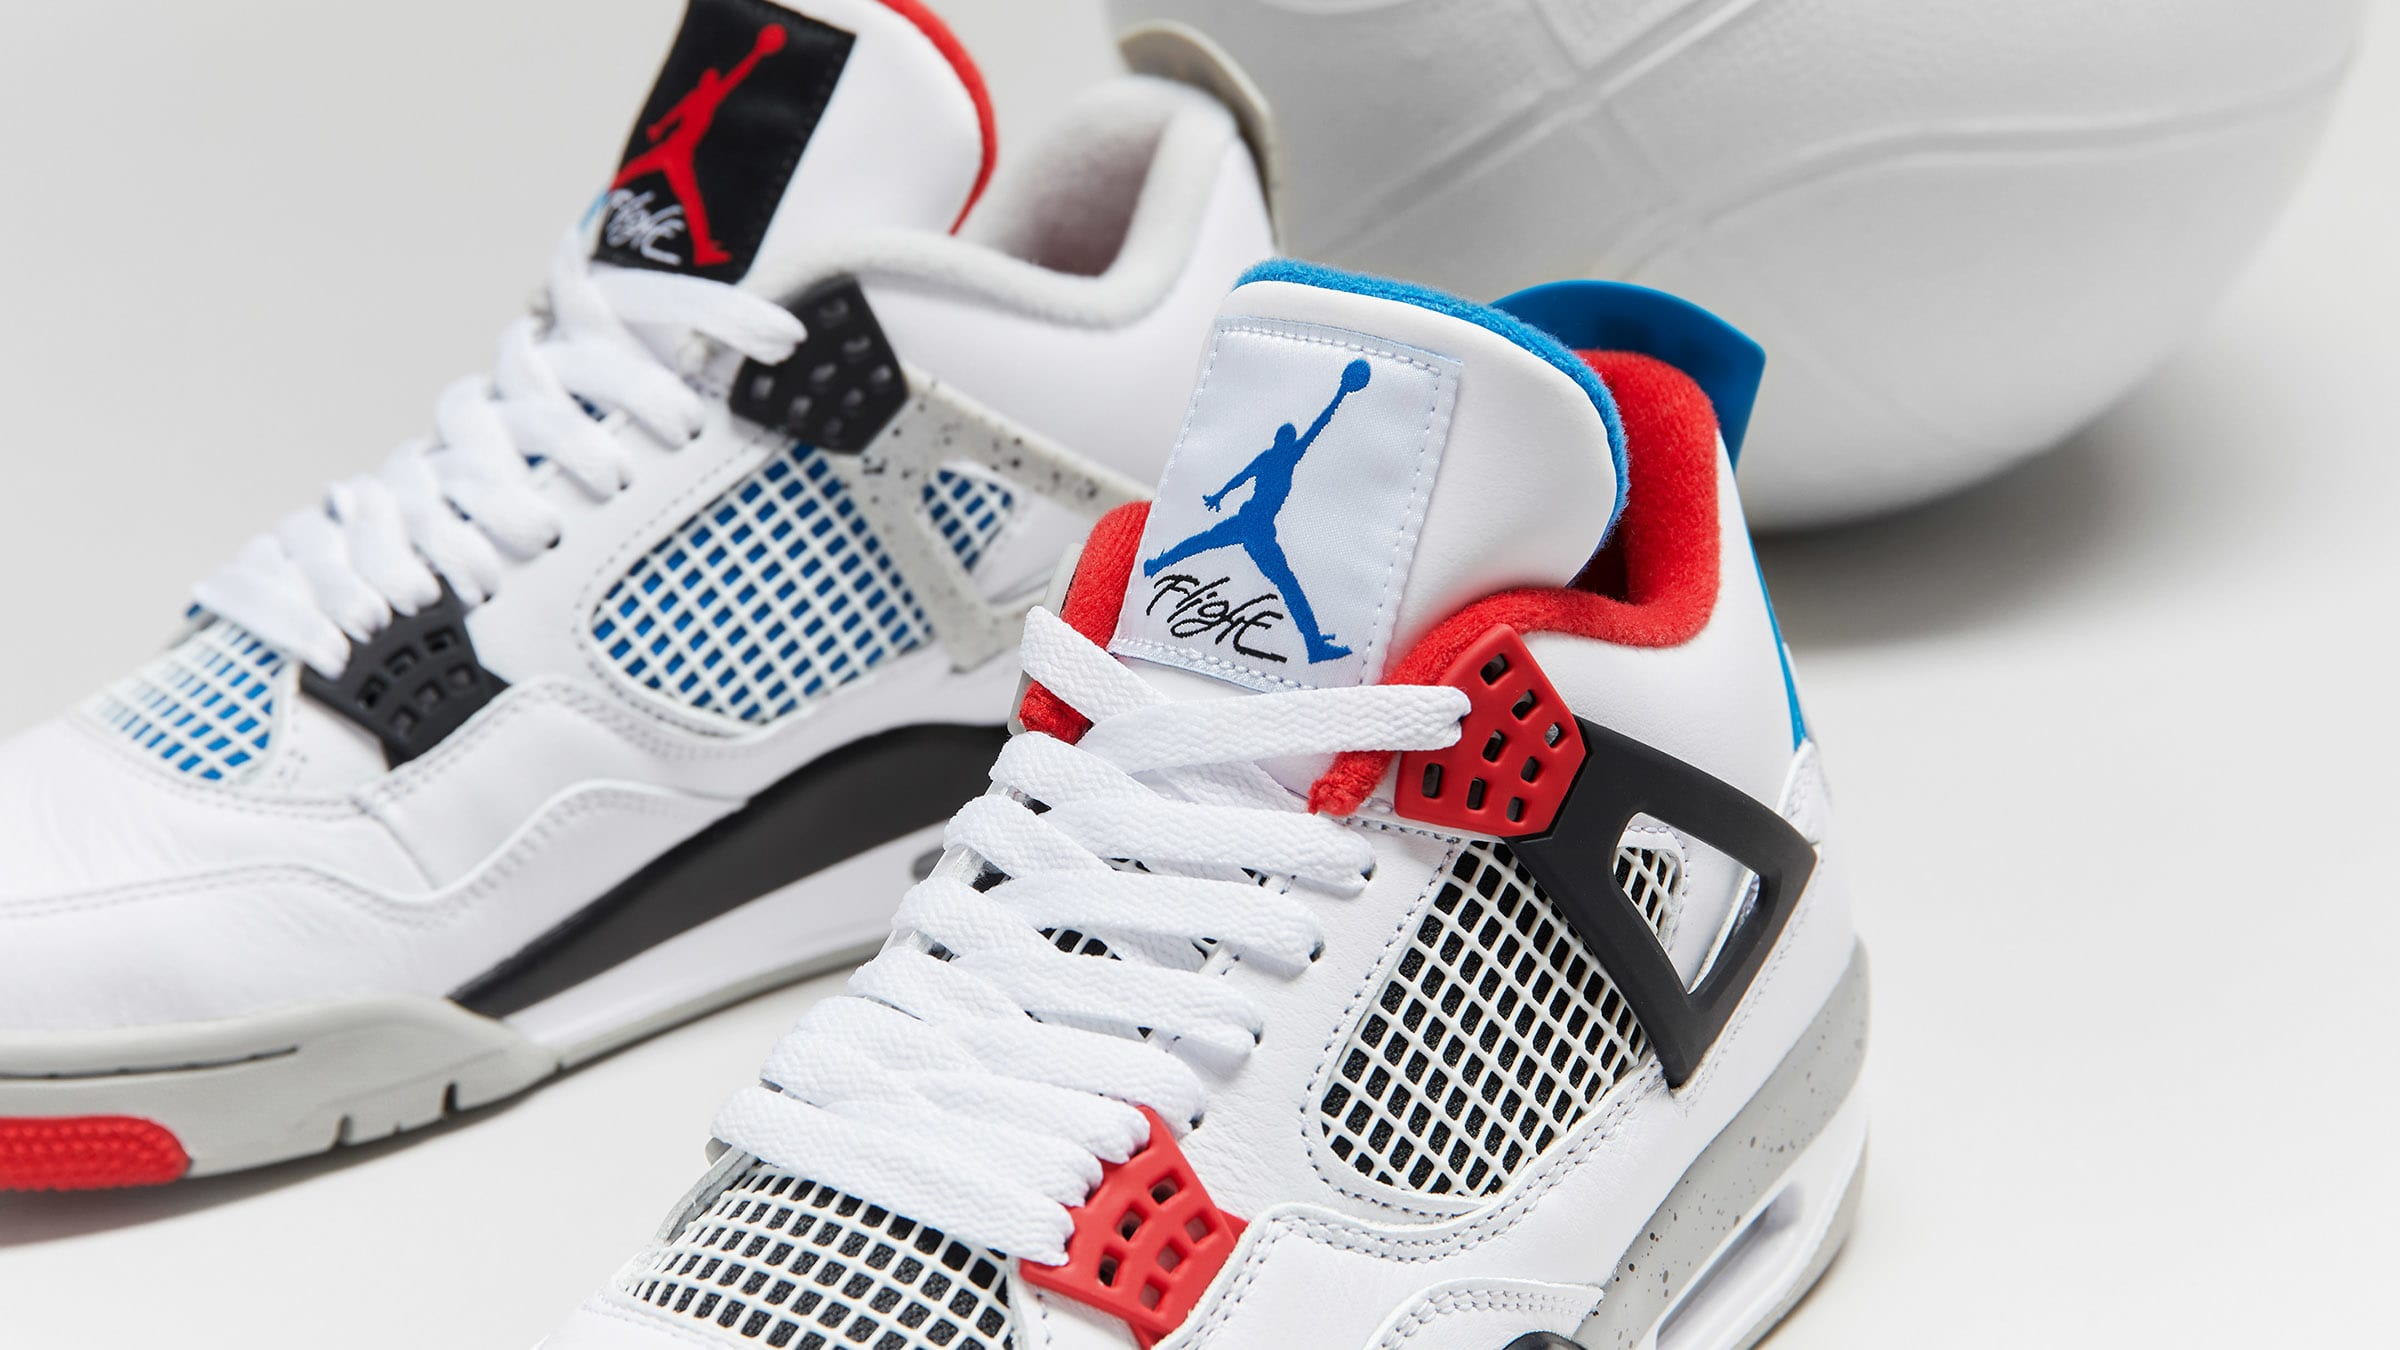 END. Features | Nike Air Jordan 4 'What The 4' Register